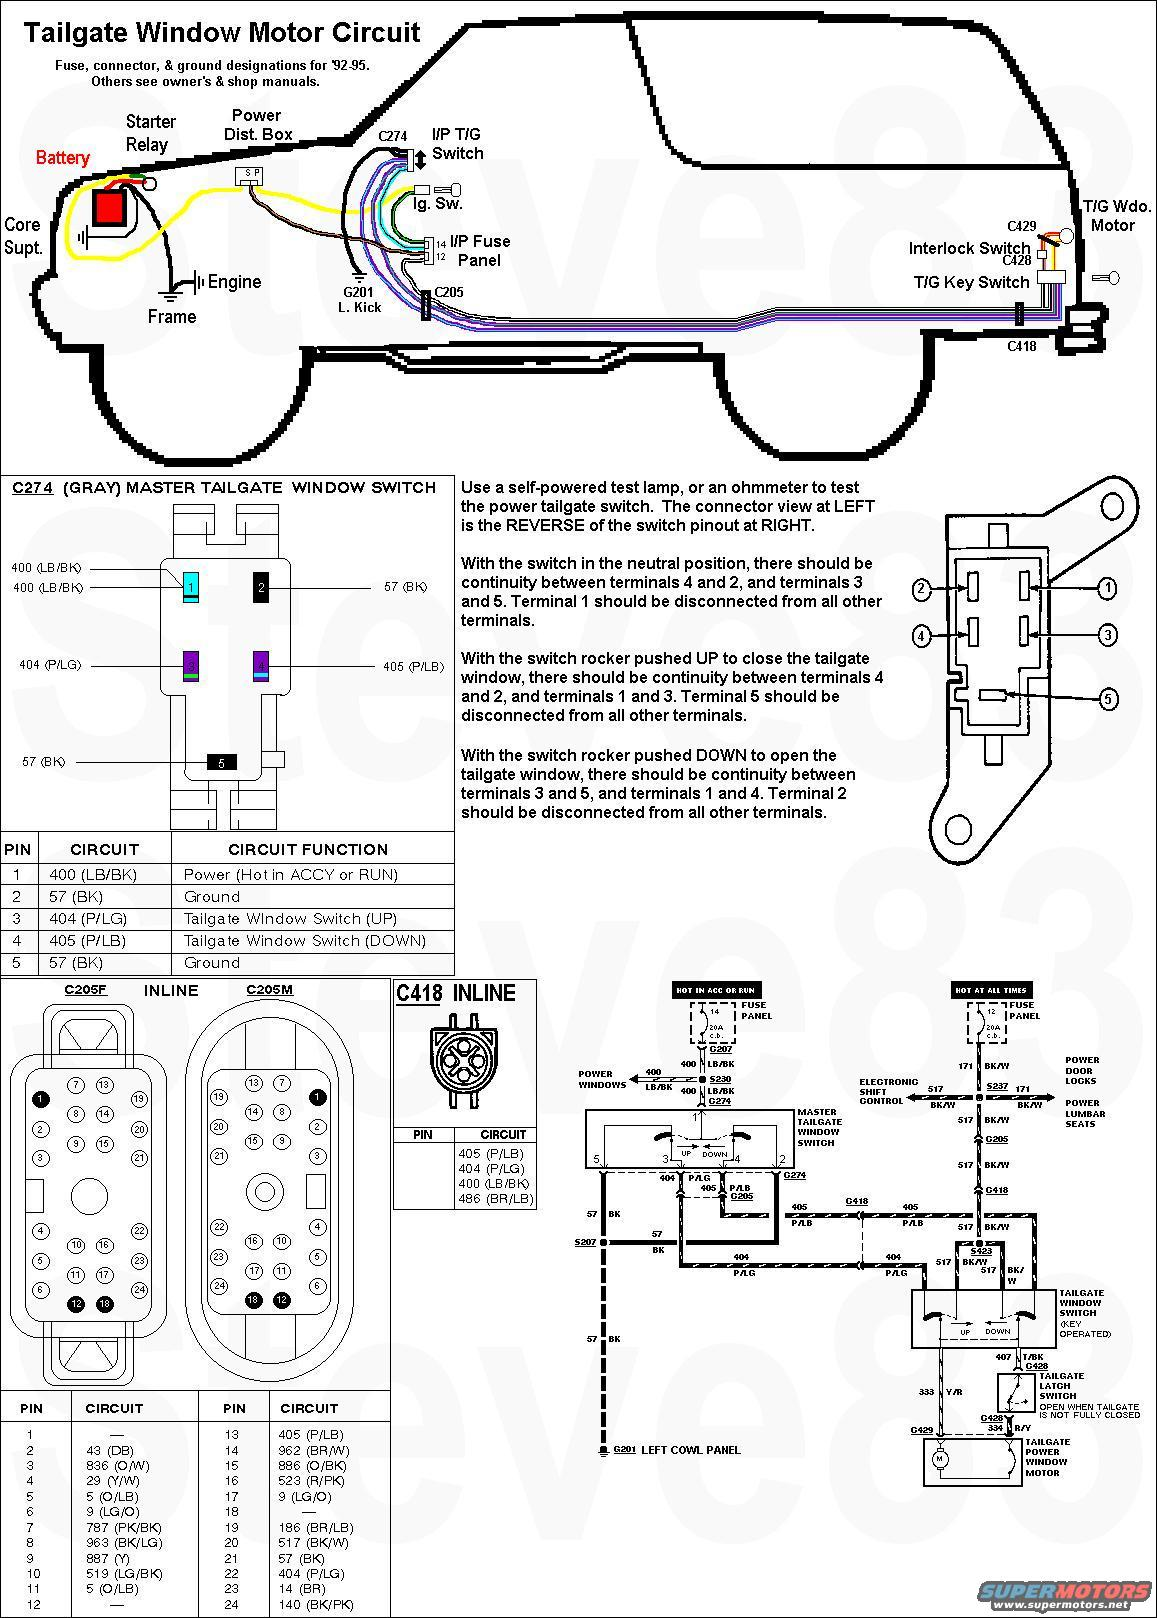 Duramax Injector Wiring Diagram likewise 883422 Slow Rear Window as well 2000 F250 Super Duty Fuse Box Diagram besides Ford F150 F250 Why Is My Abs Light On 356396 besides WiringByColor. on 92 ford f 150 fuse box diagram